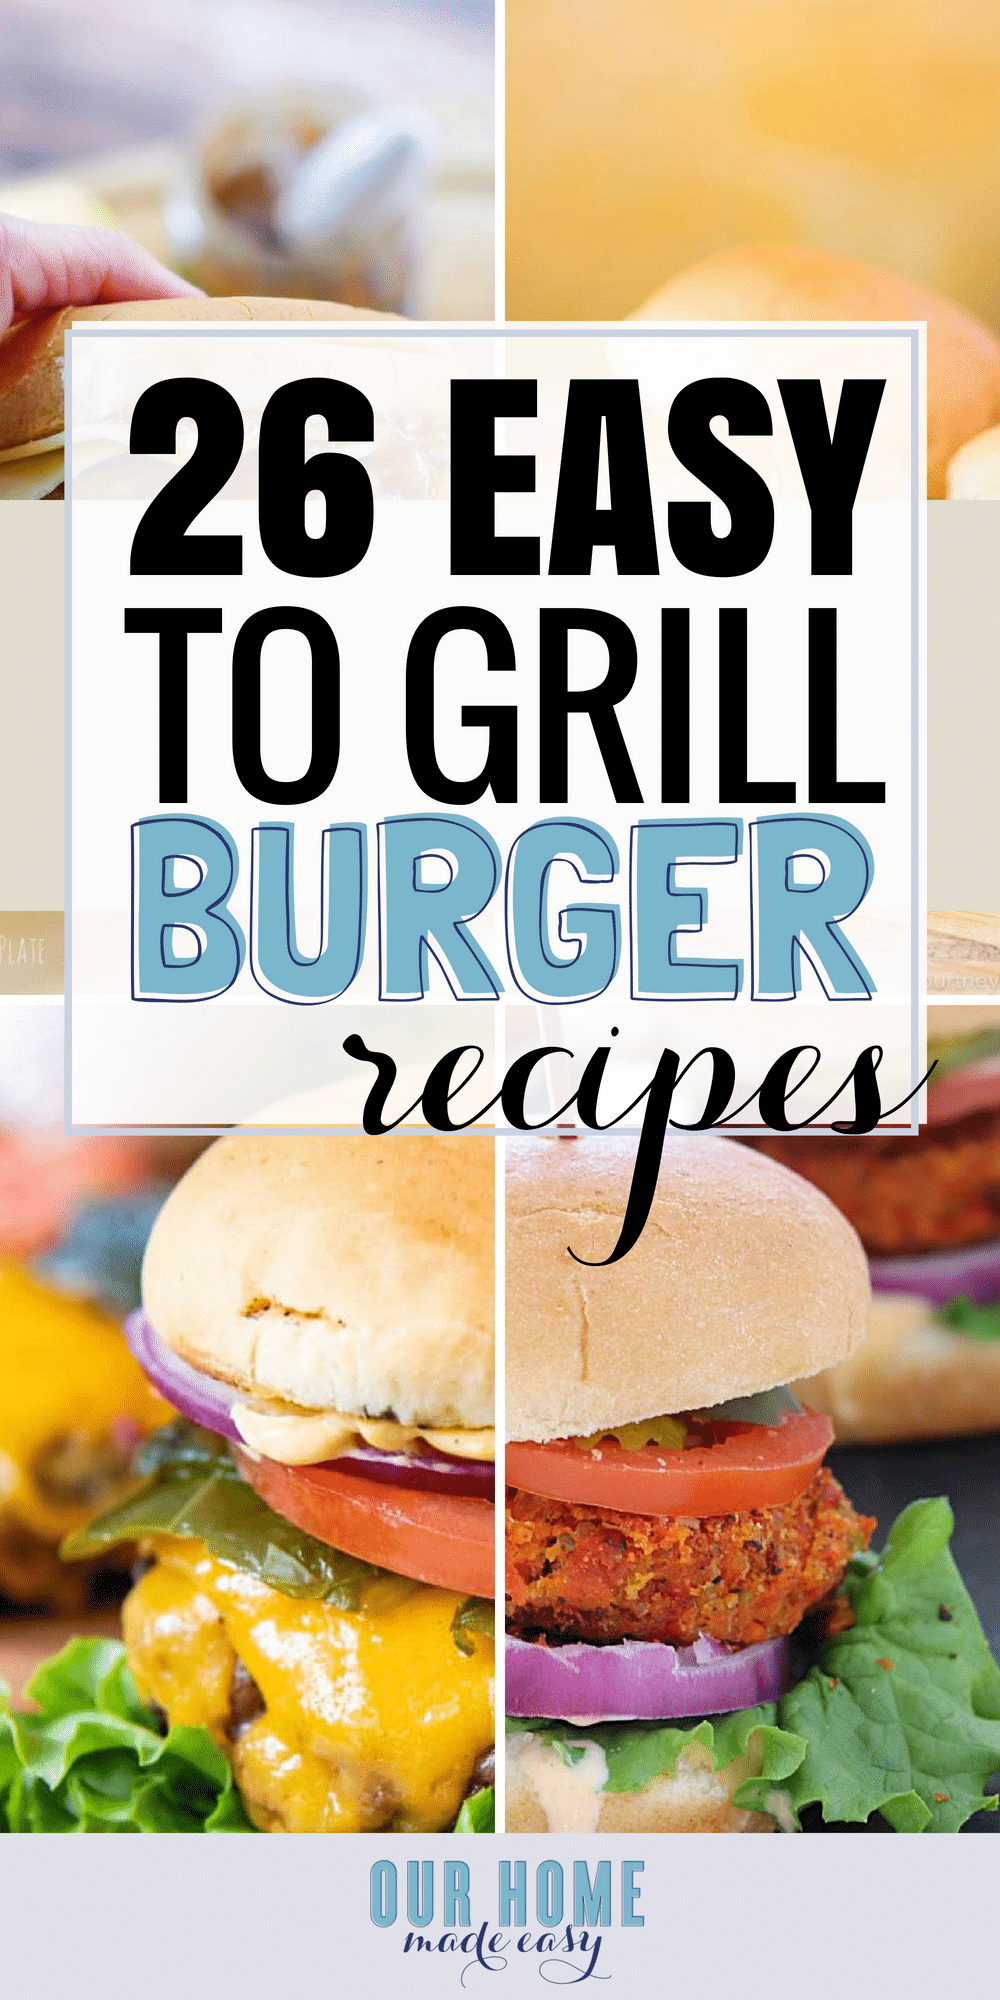 Never make a boring burger again! These 26 easy burger recipes are perfect for grilling out and enjoying dinner again!